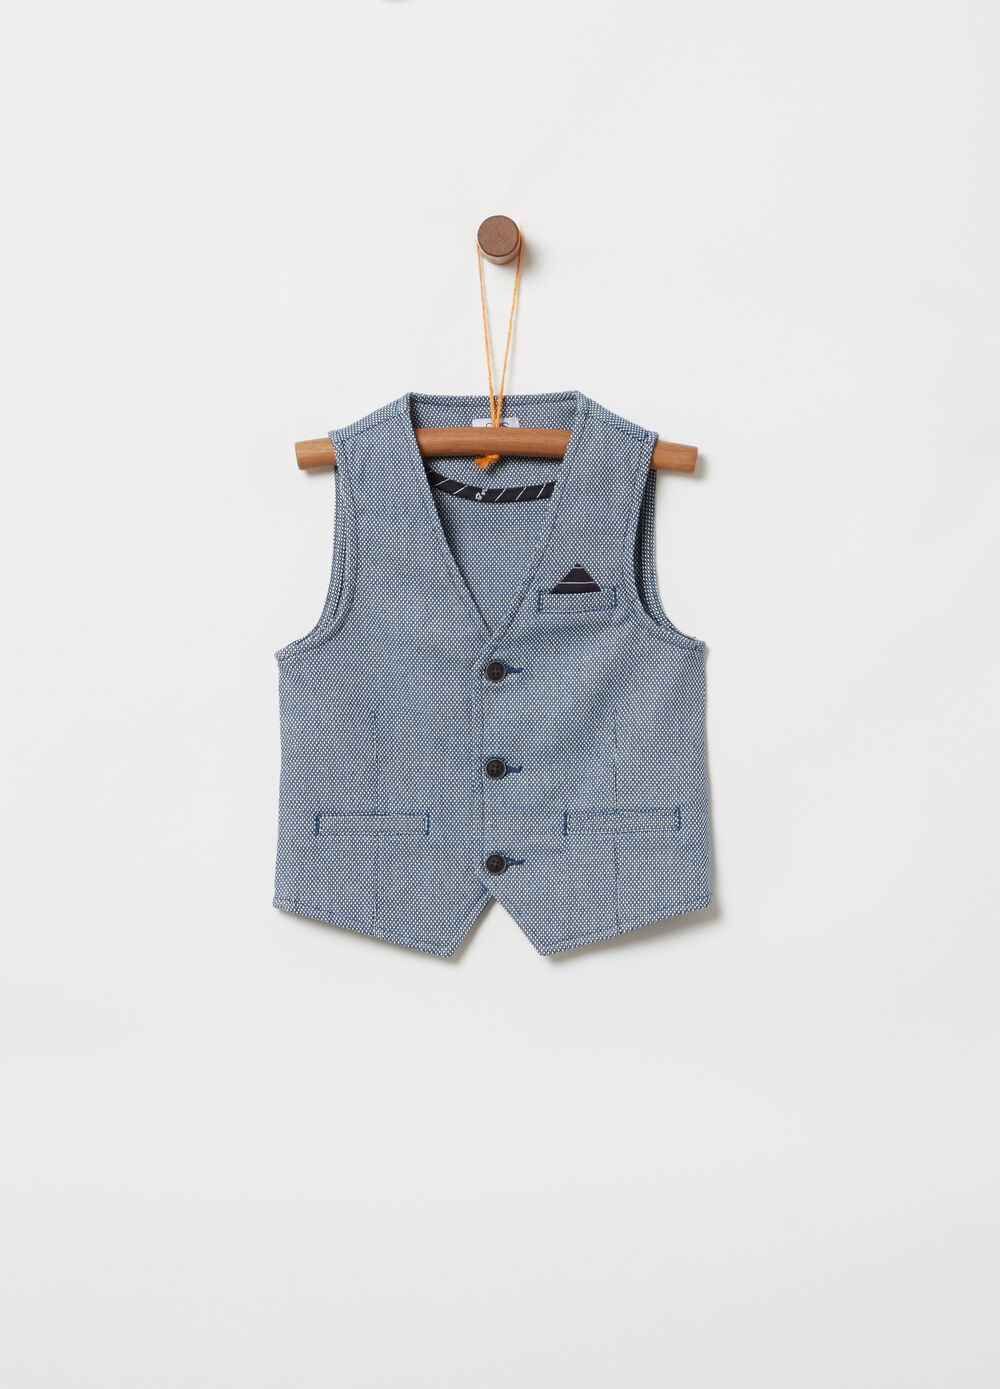 ***Elegant dyed yarn vest with welt pockets